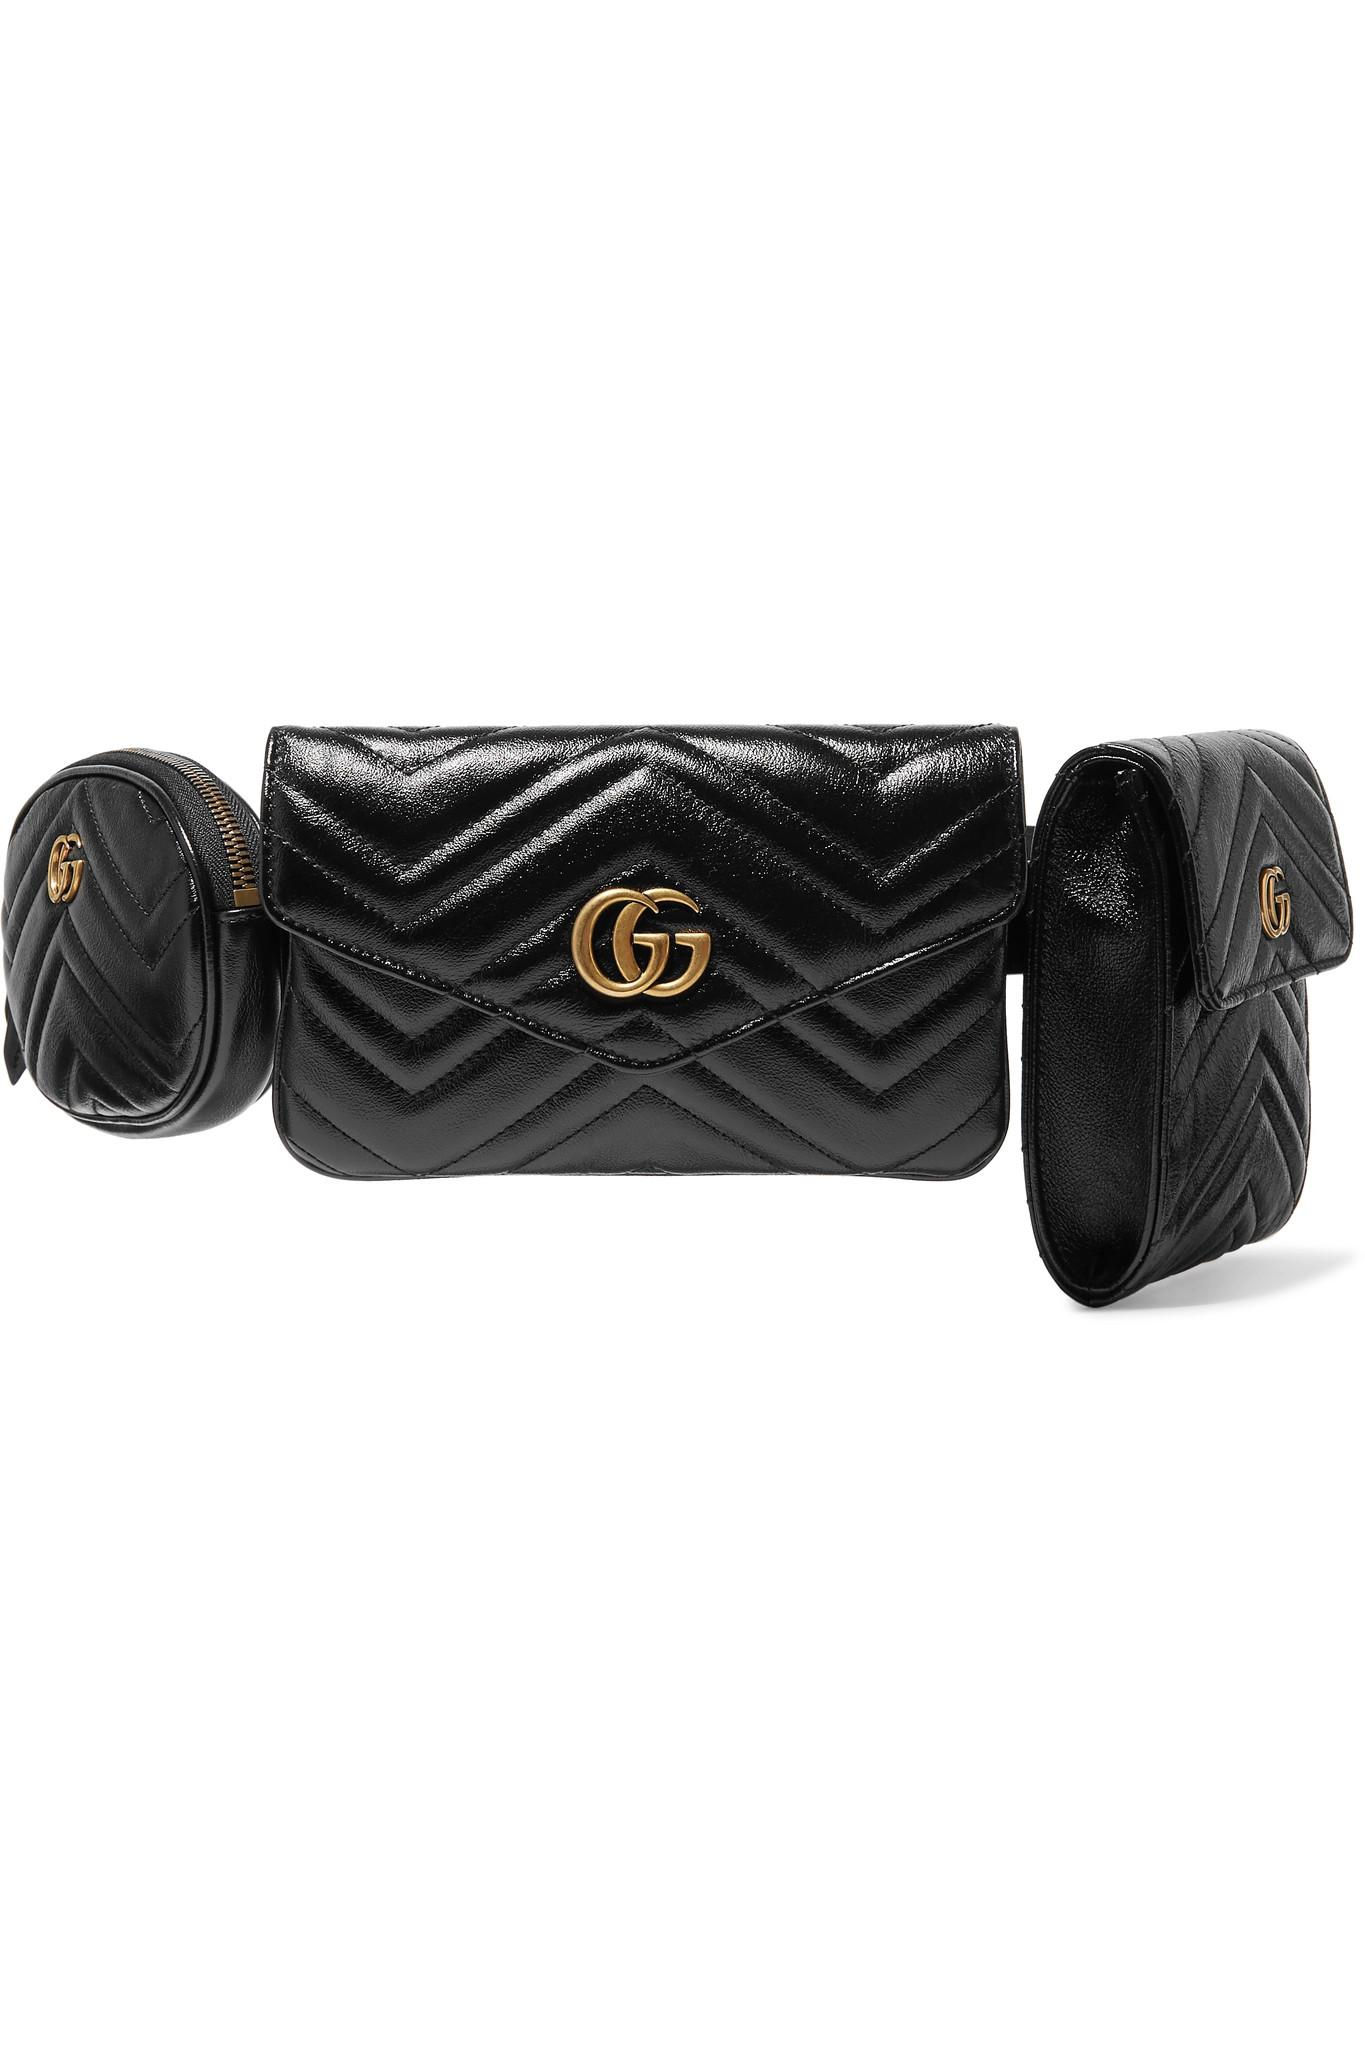 a9ae68c9716 Lyst - Gucci Gg Marmont Quilted Leather Belt Bag in Black